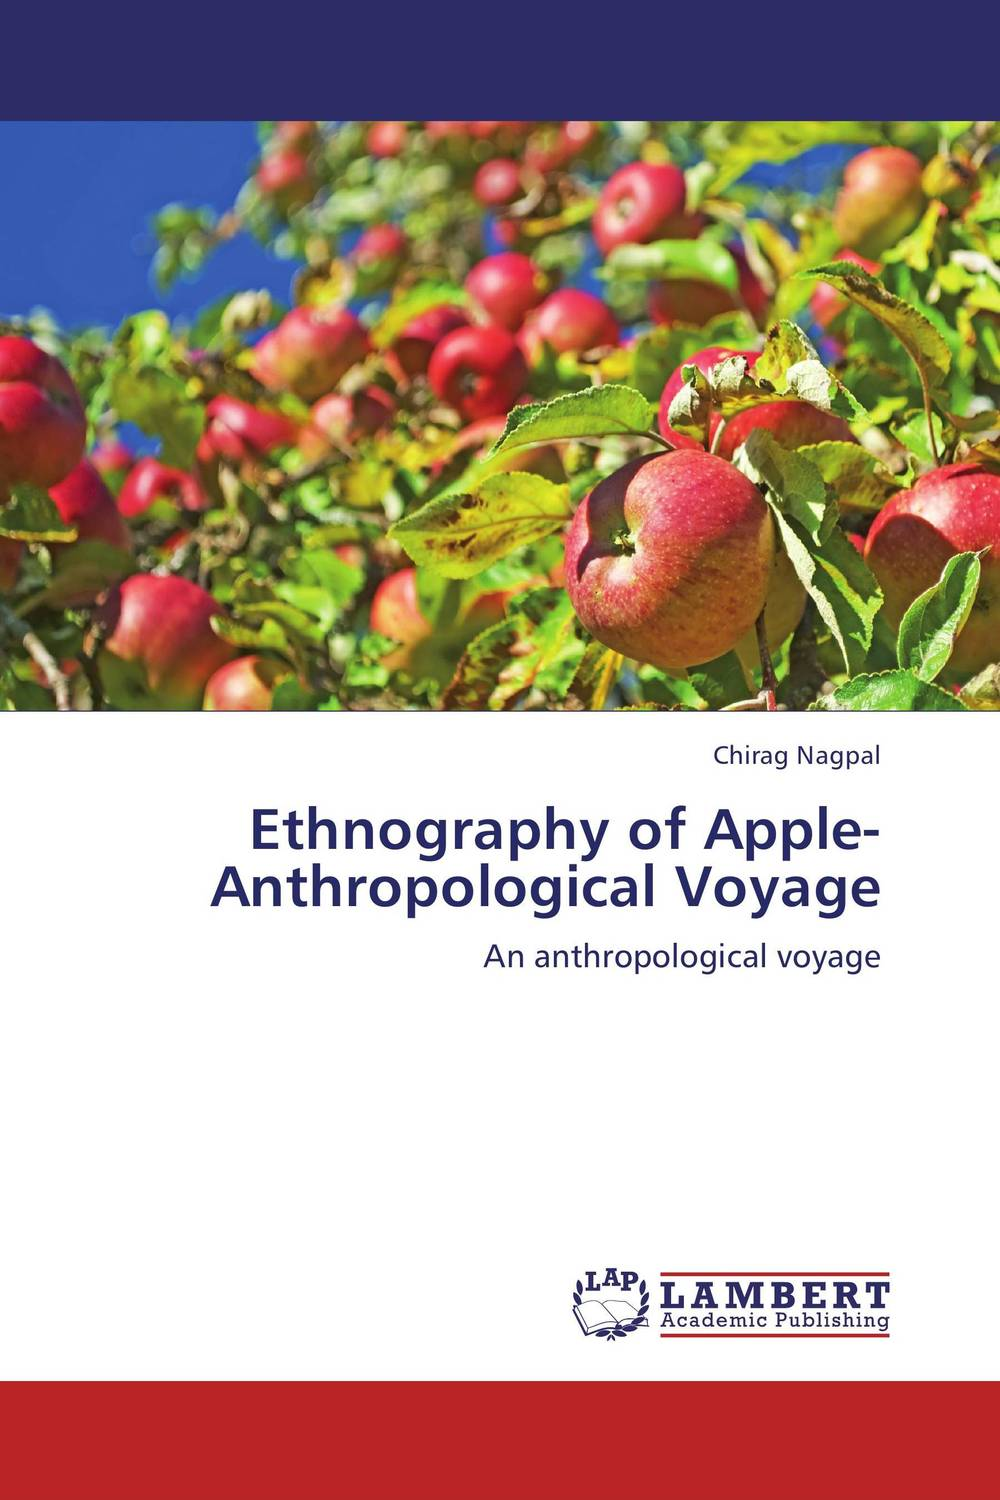 Ethnography of Apple-Anthropological Voyage scientific and mythological ways of knowing in anthropology